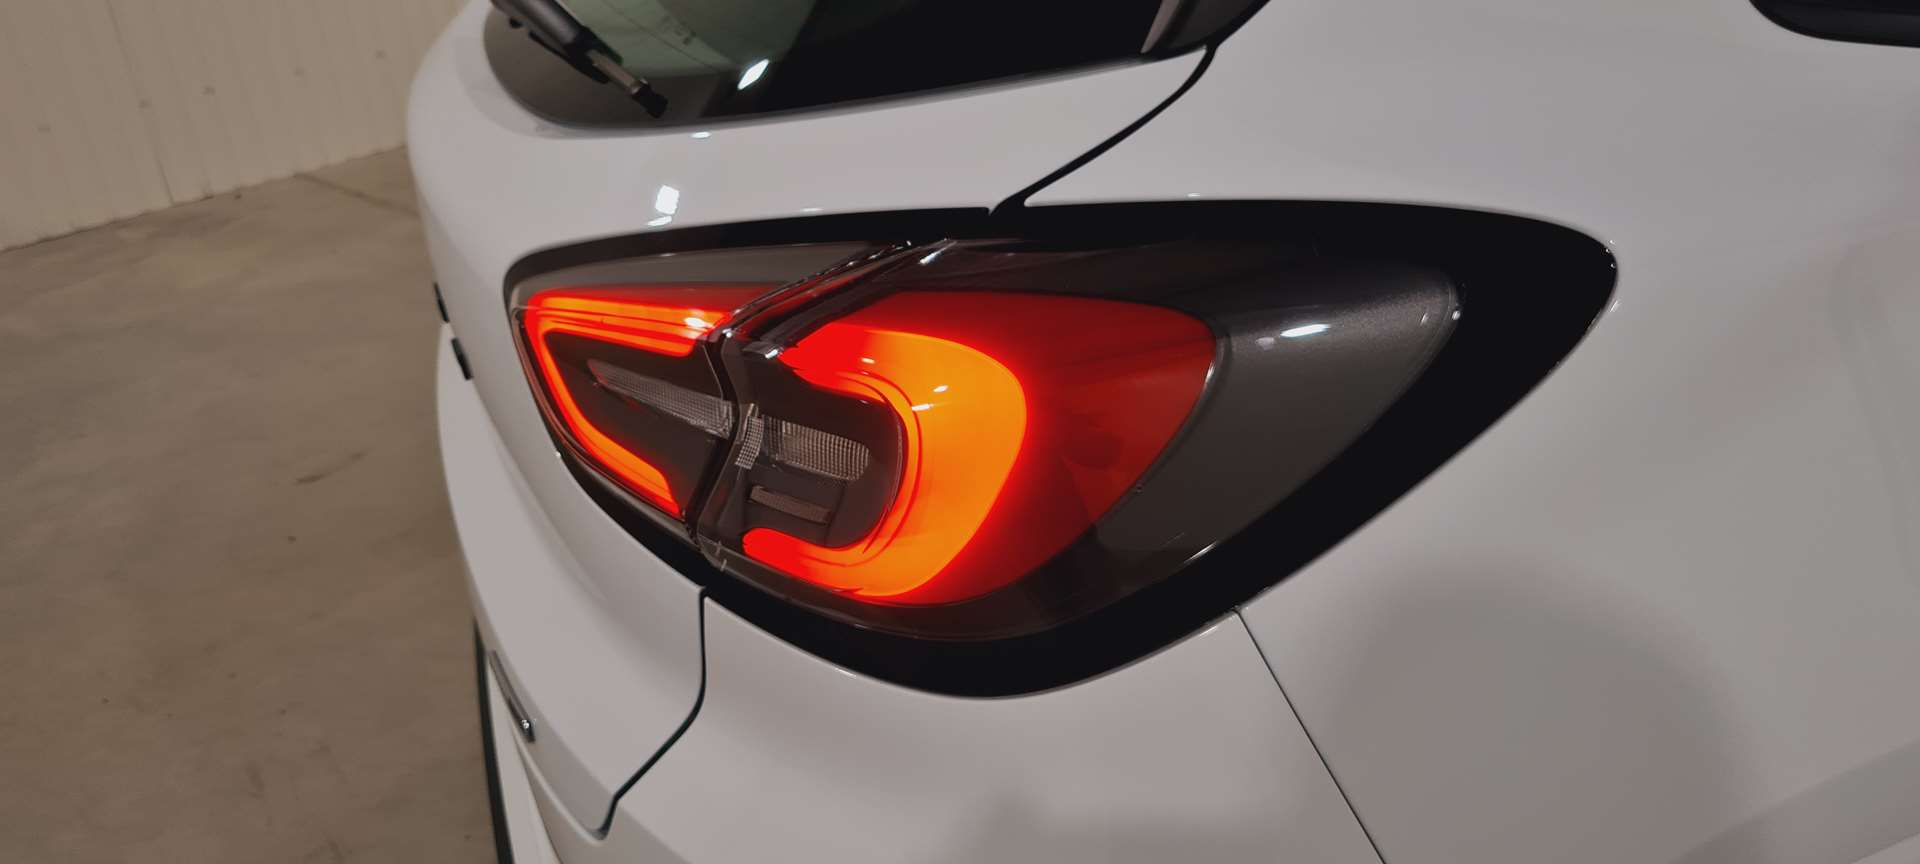 photo FORD PUMA 1.0 EcoBoost 125 ch mHEV S&S BVM6 ST Line